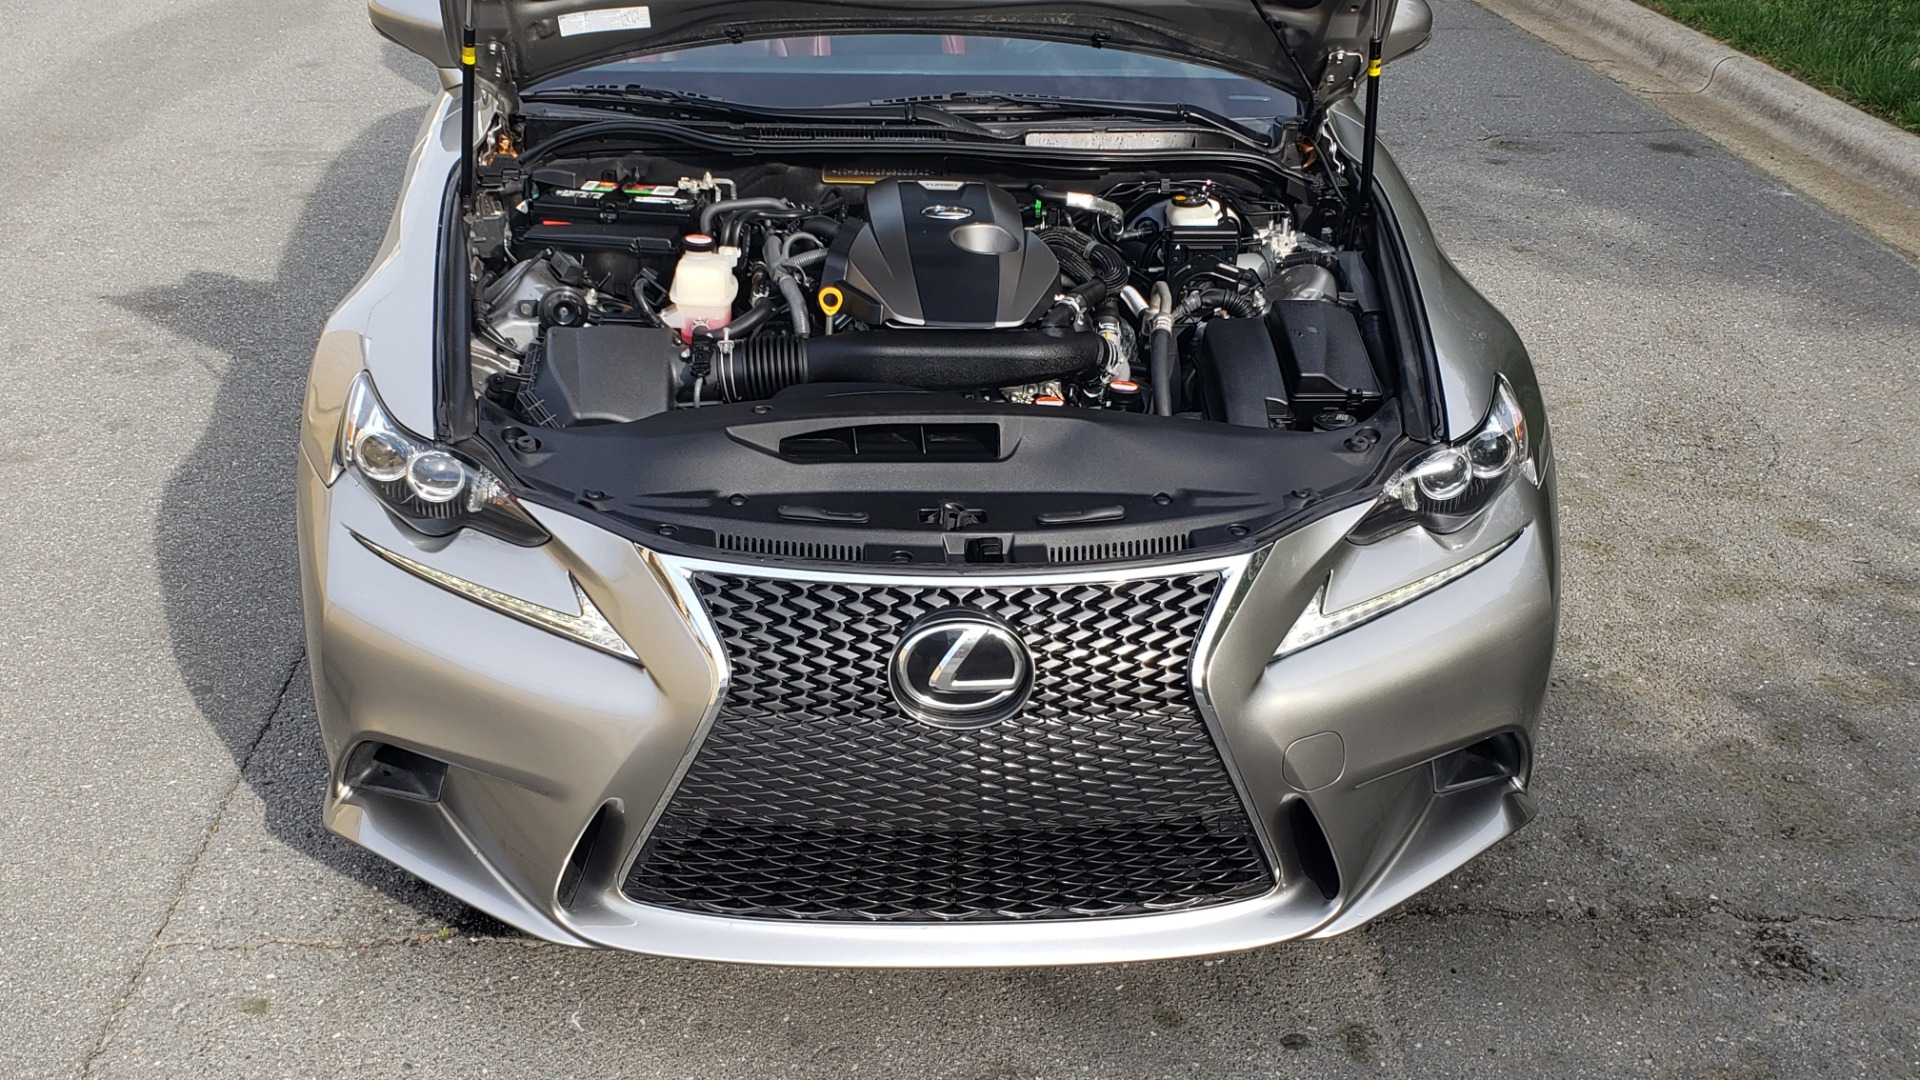 Used 2016 Lexus IS 200T F-SPORT / BSM / SUNROOF / VENTILATED SEATS / REARVIEW for sale Sold at Formula Imports in Charlotte NC 28227 10